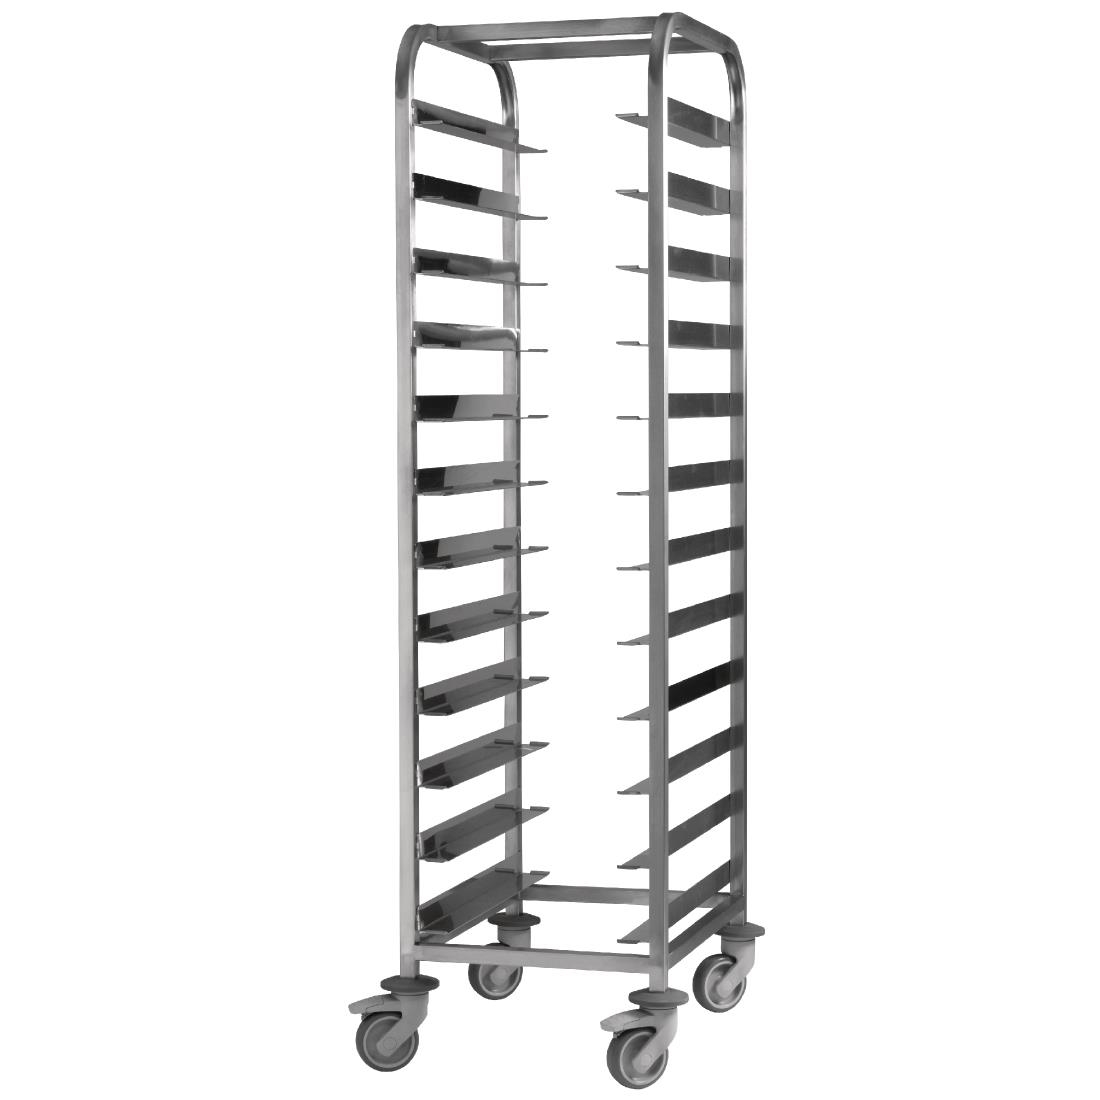 Image of EAIS Stainless Steel Clearing Trolley 12 Shelves